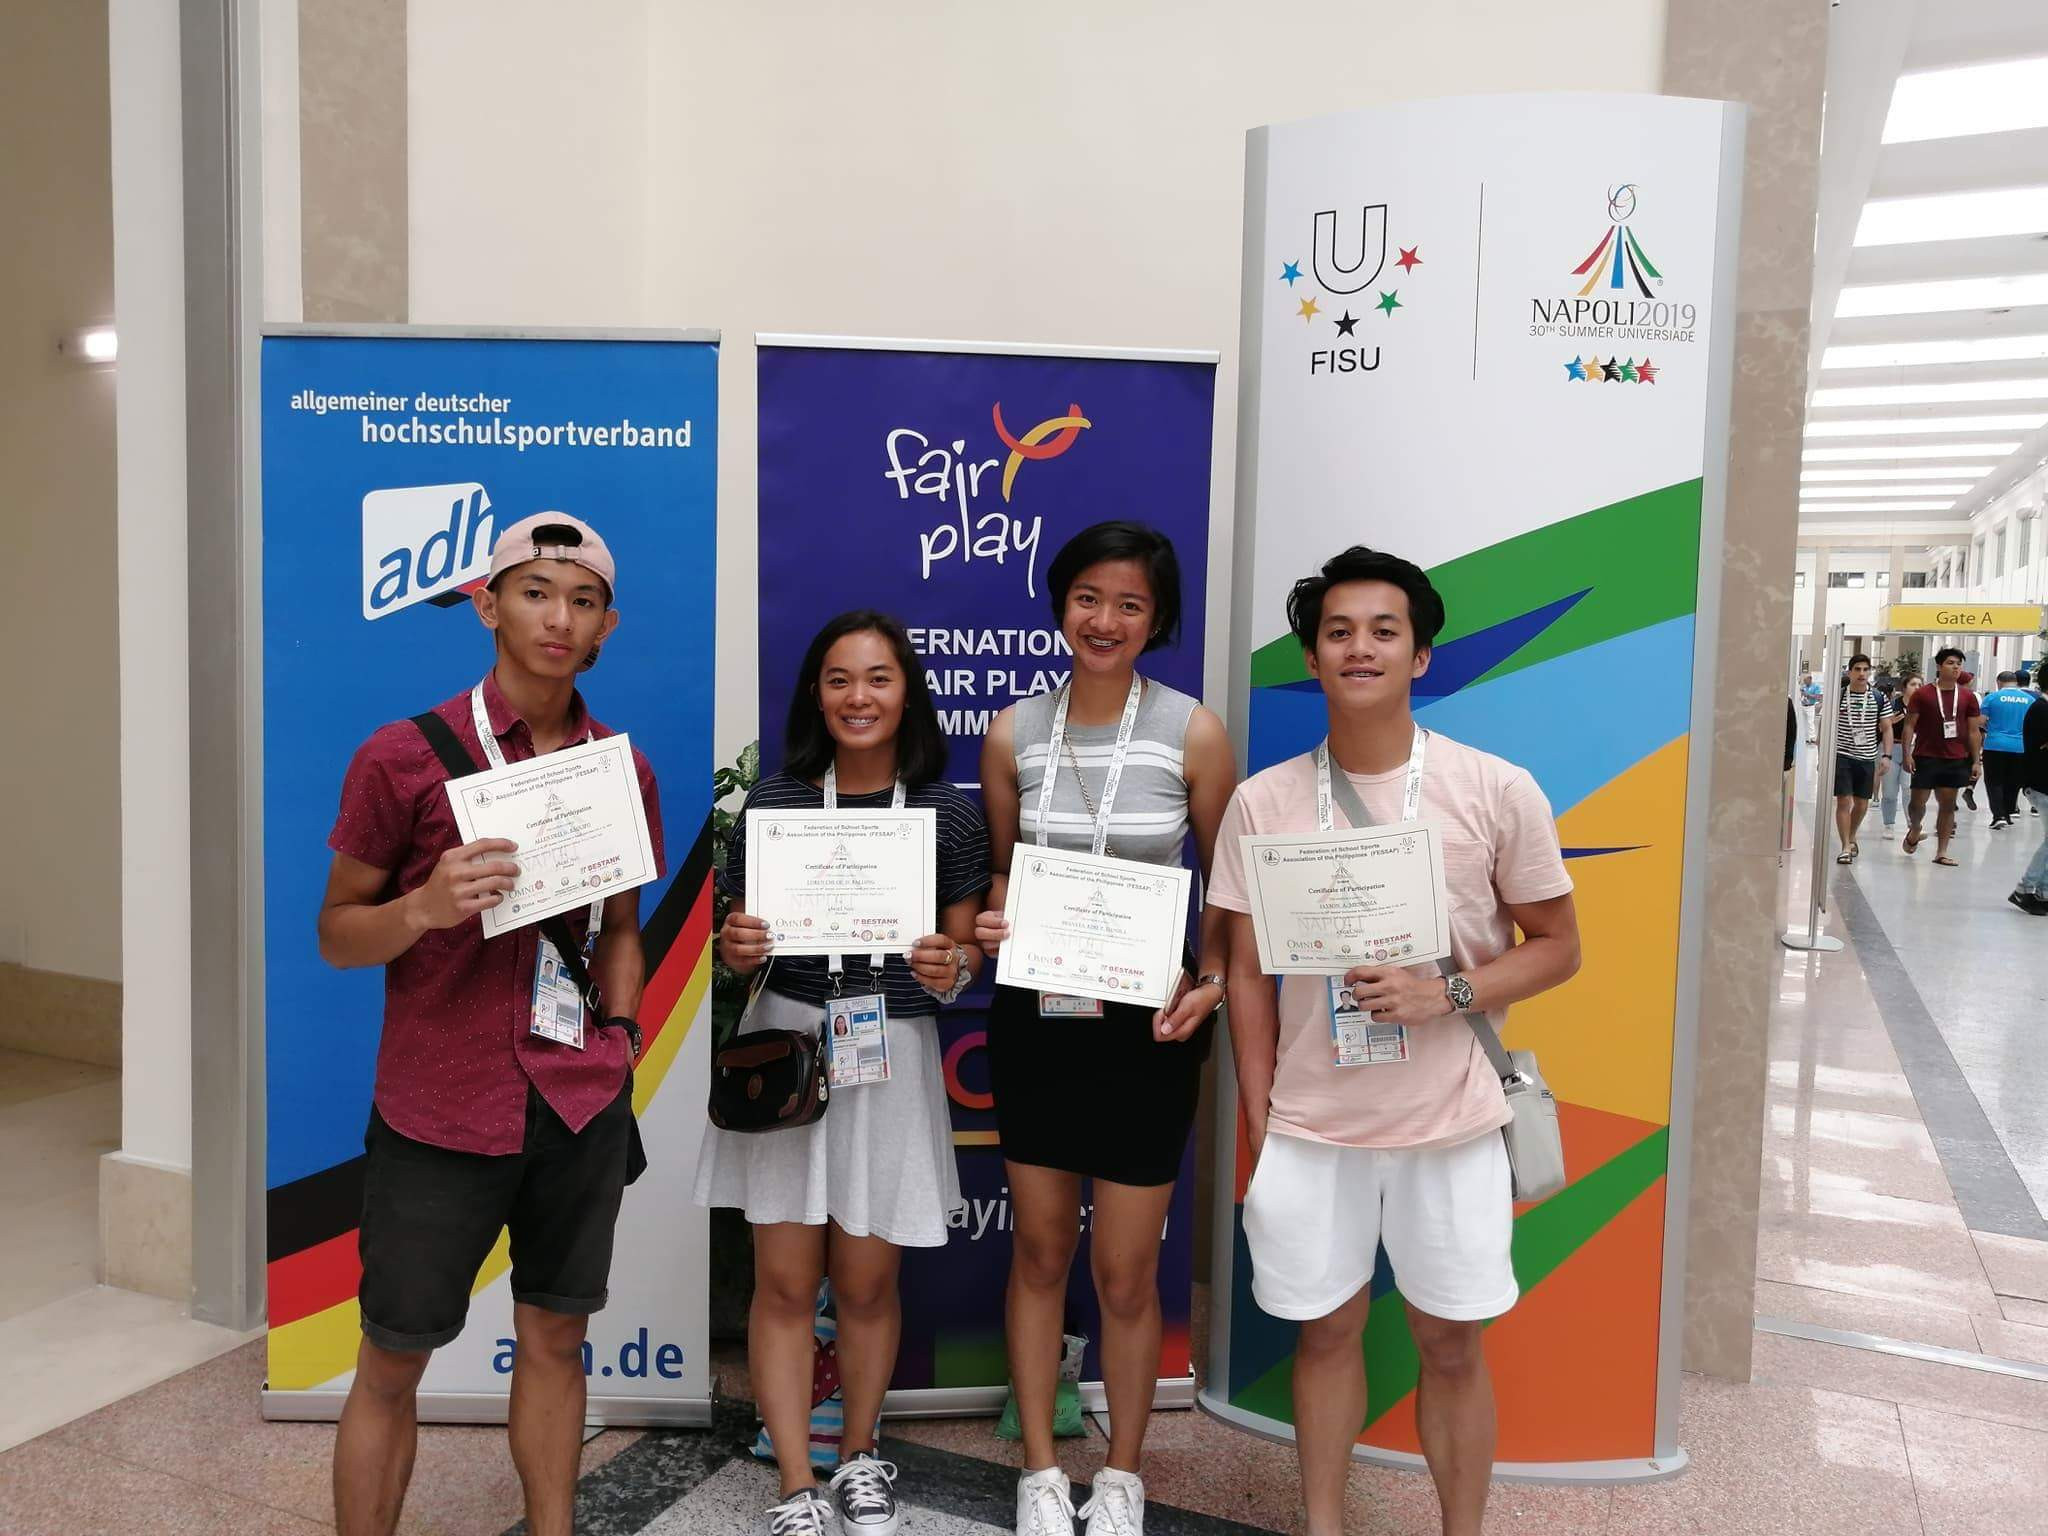 Philippines seeing benefits of drive to keep students involved in sport after university